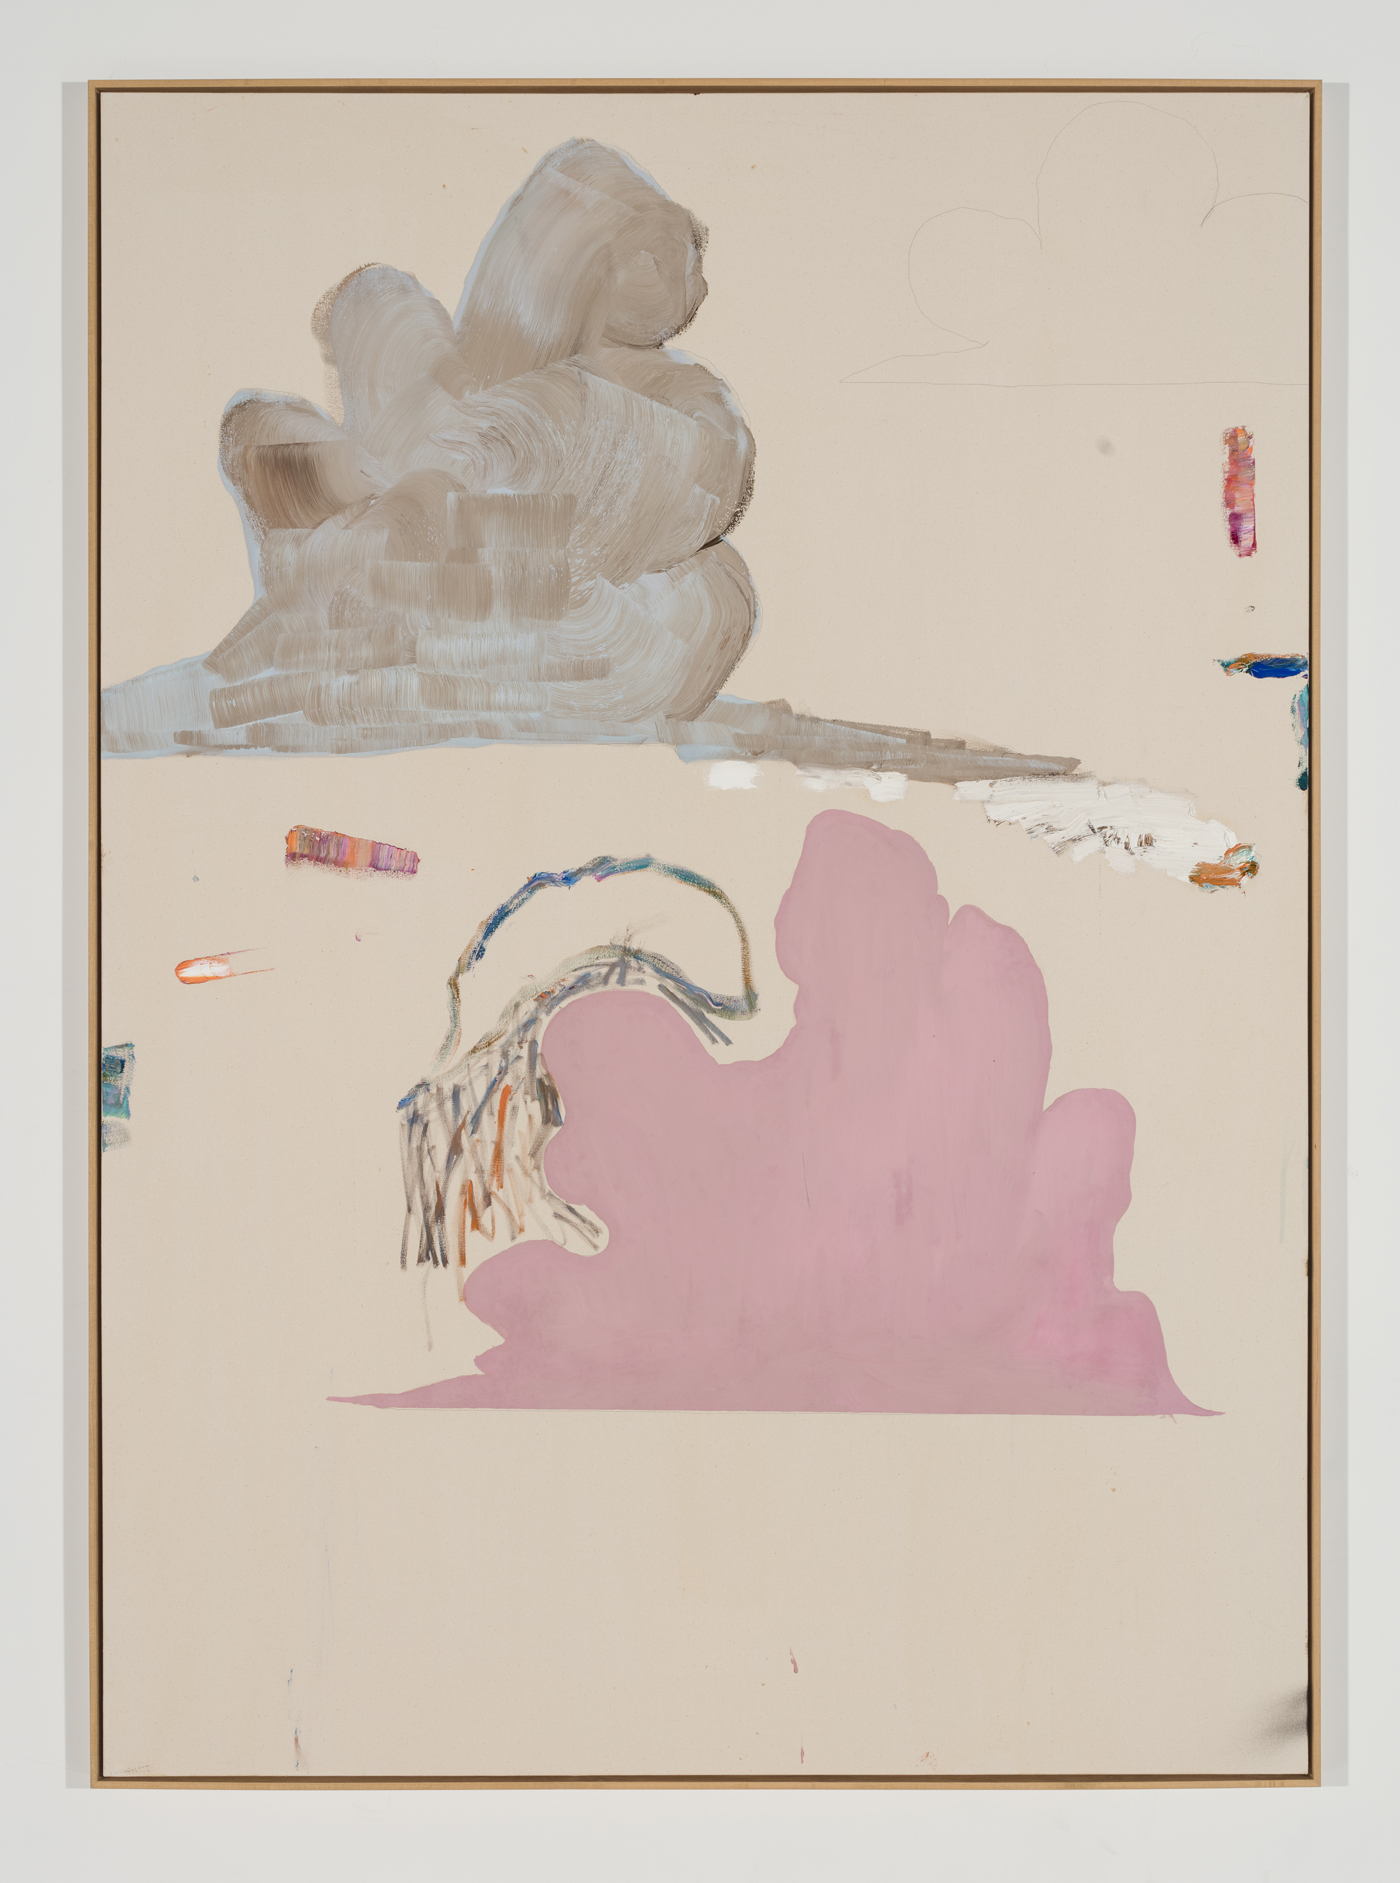 Benoît Maire, 'Cloud Painting,' 2017. Courtesy of the artist and Arsenal Contemporary, New York. Photography by Richard-Max Tremblay.